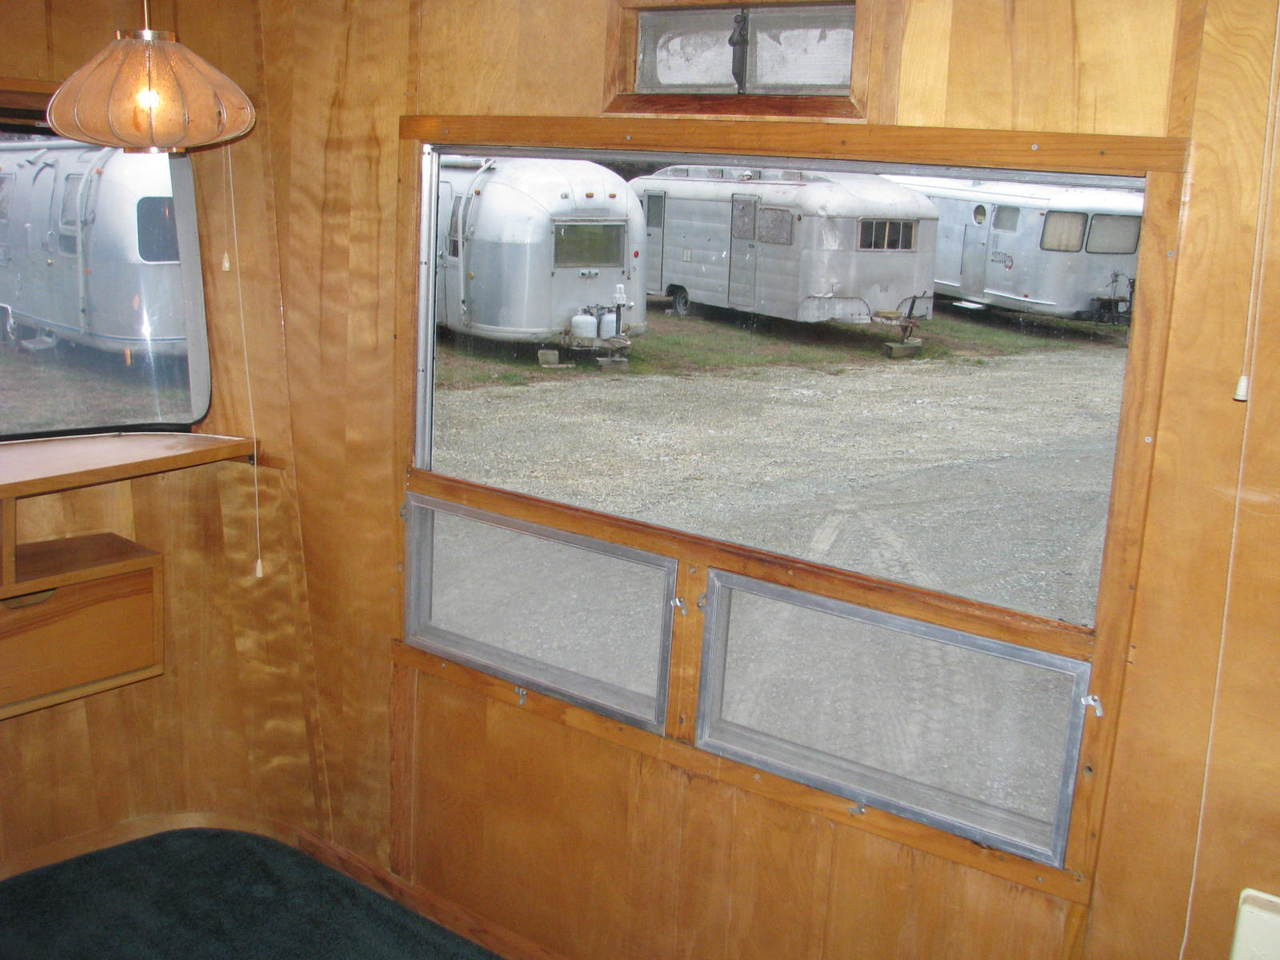 1956 Spartan 45' Imperial Mansion #162 (SOLD)